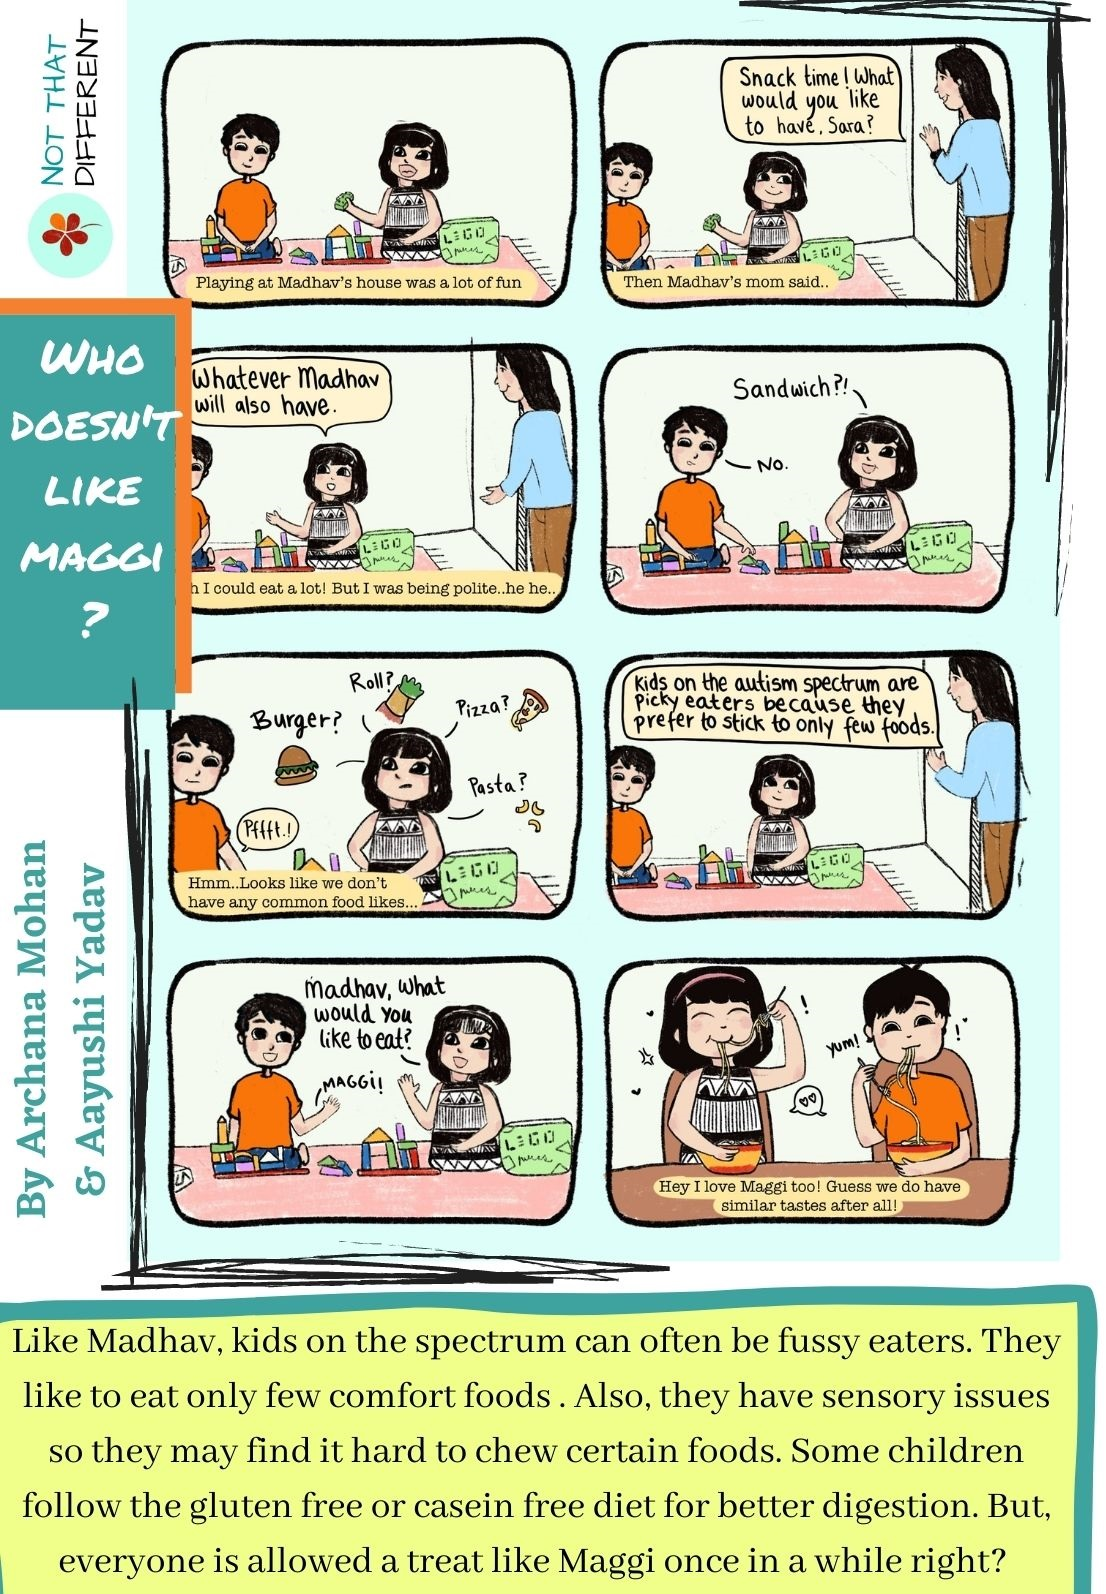 We are Maggicians! | Comic Strip on Autism